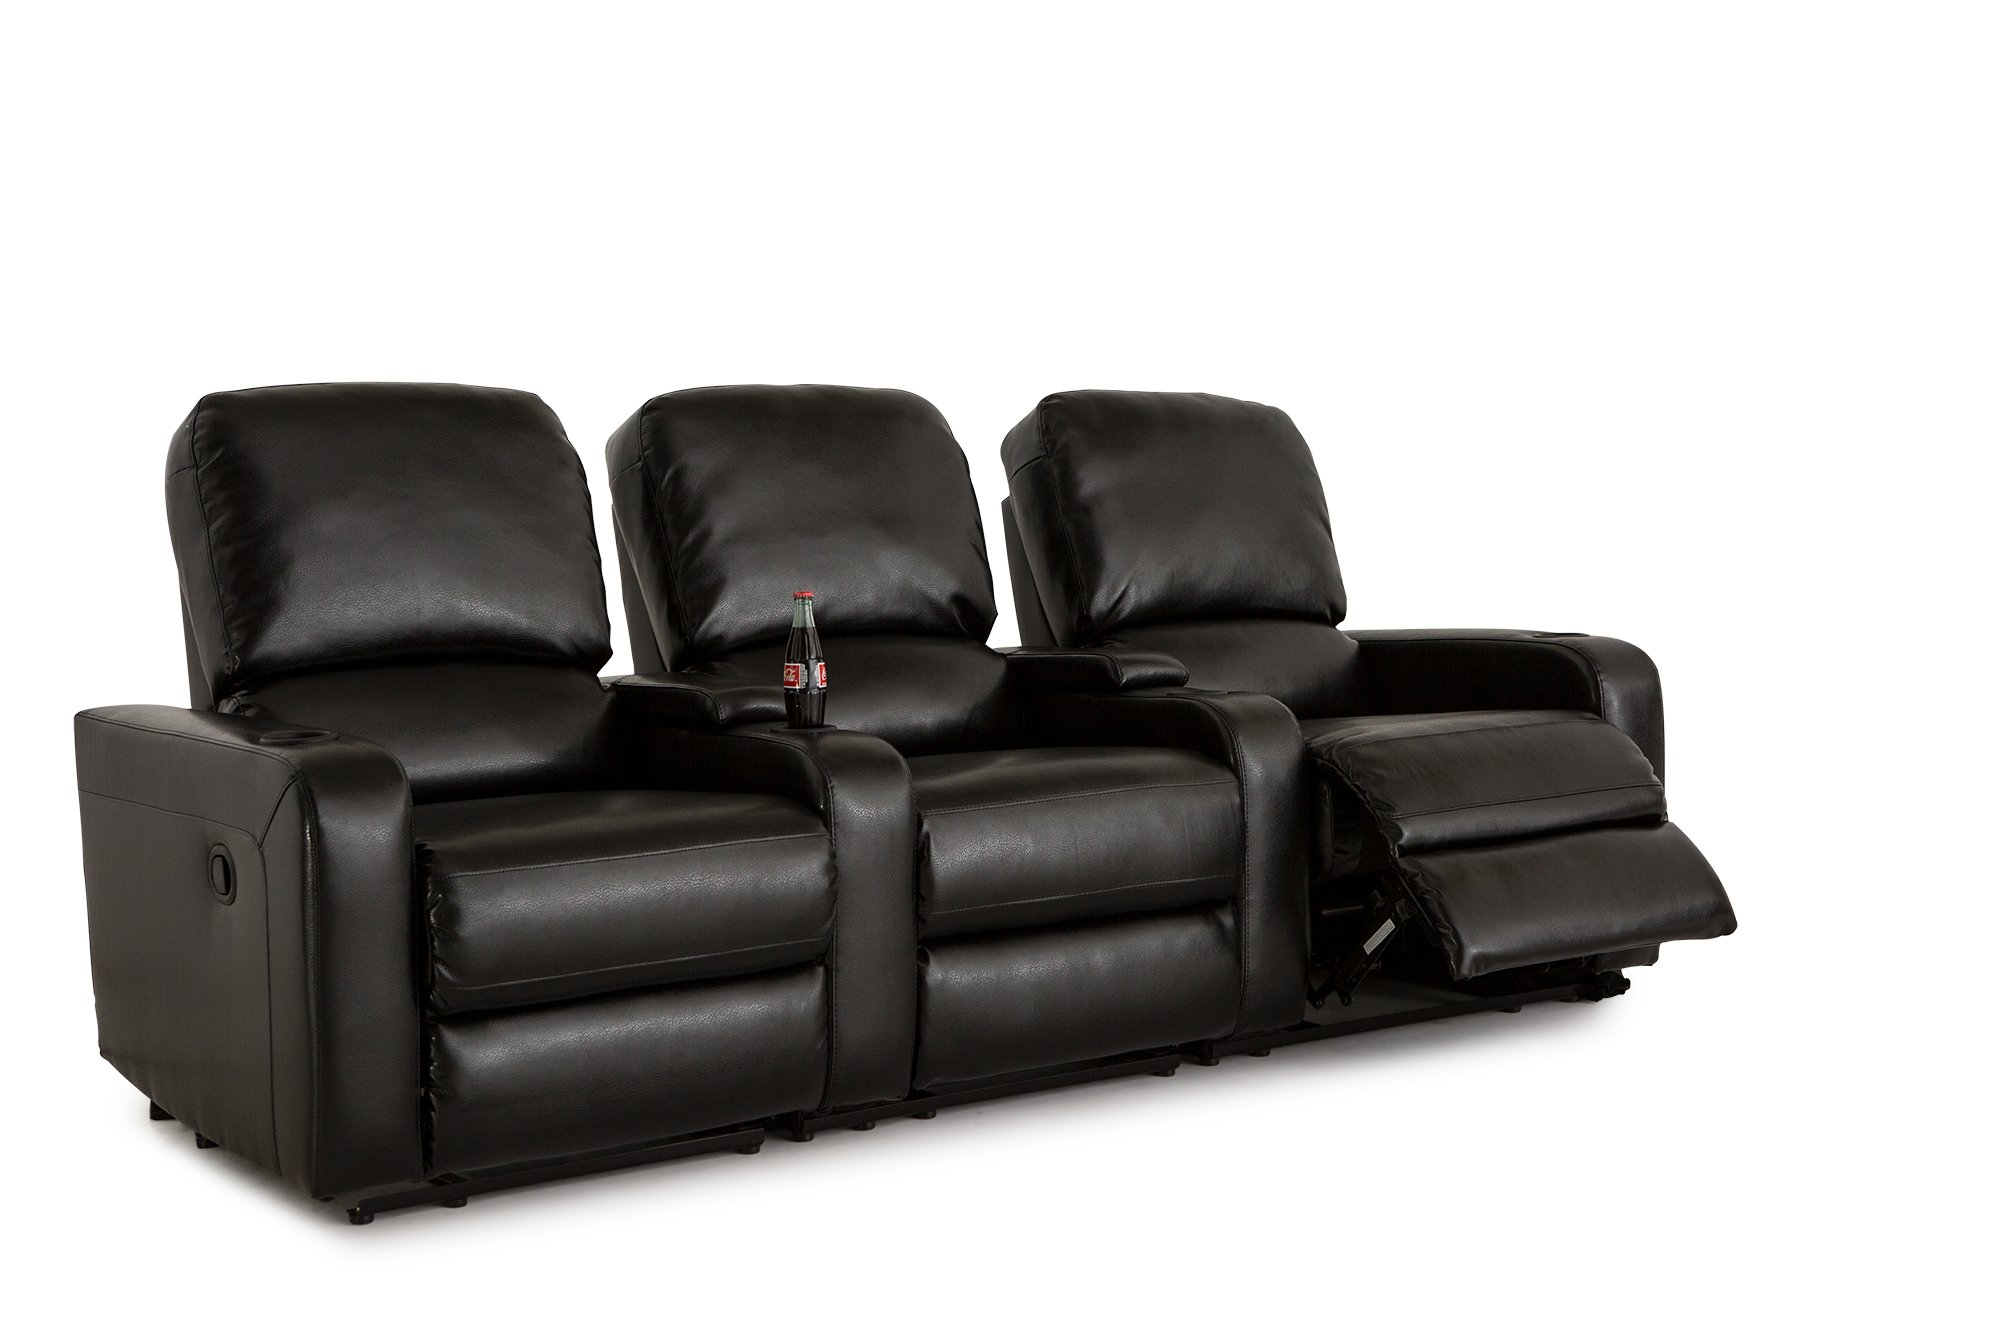 Klaussner Twilight Home Theater Seating Manual Reclinable Bonded Leather Row of 3 with Storage and Cupholders Black